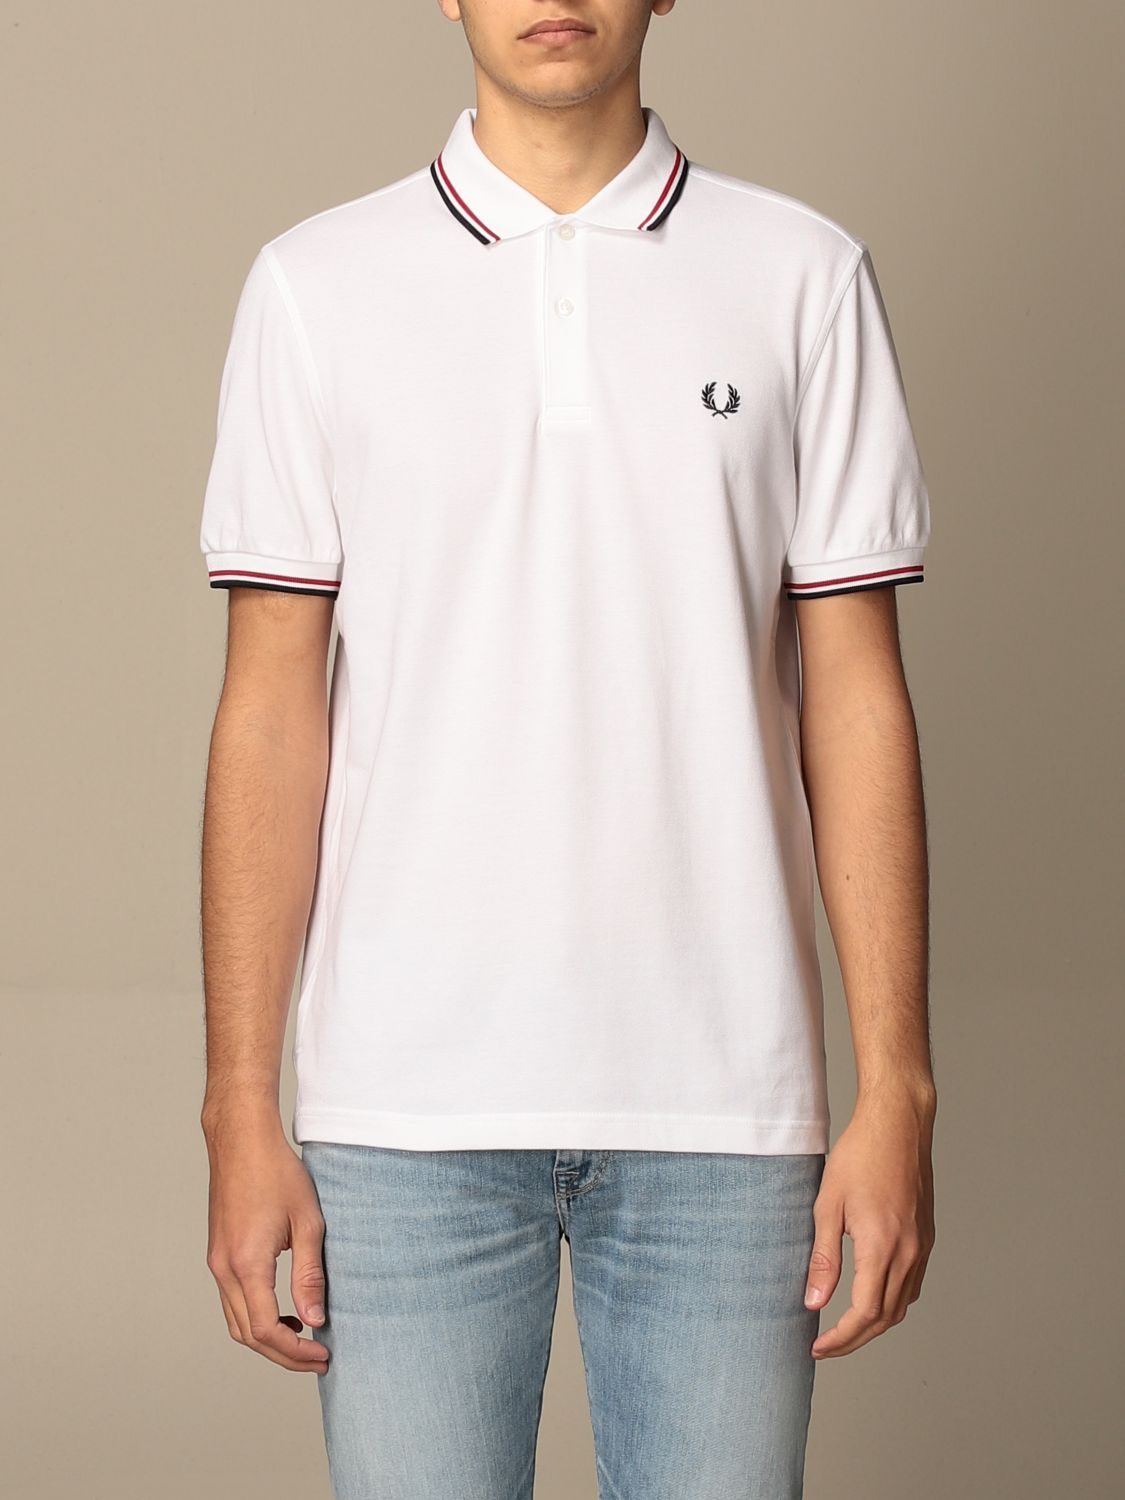 Polo shirt Fred Perry: Polo shirt men Fred Perry white 1